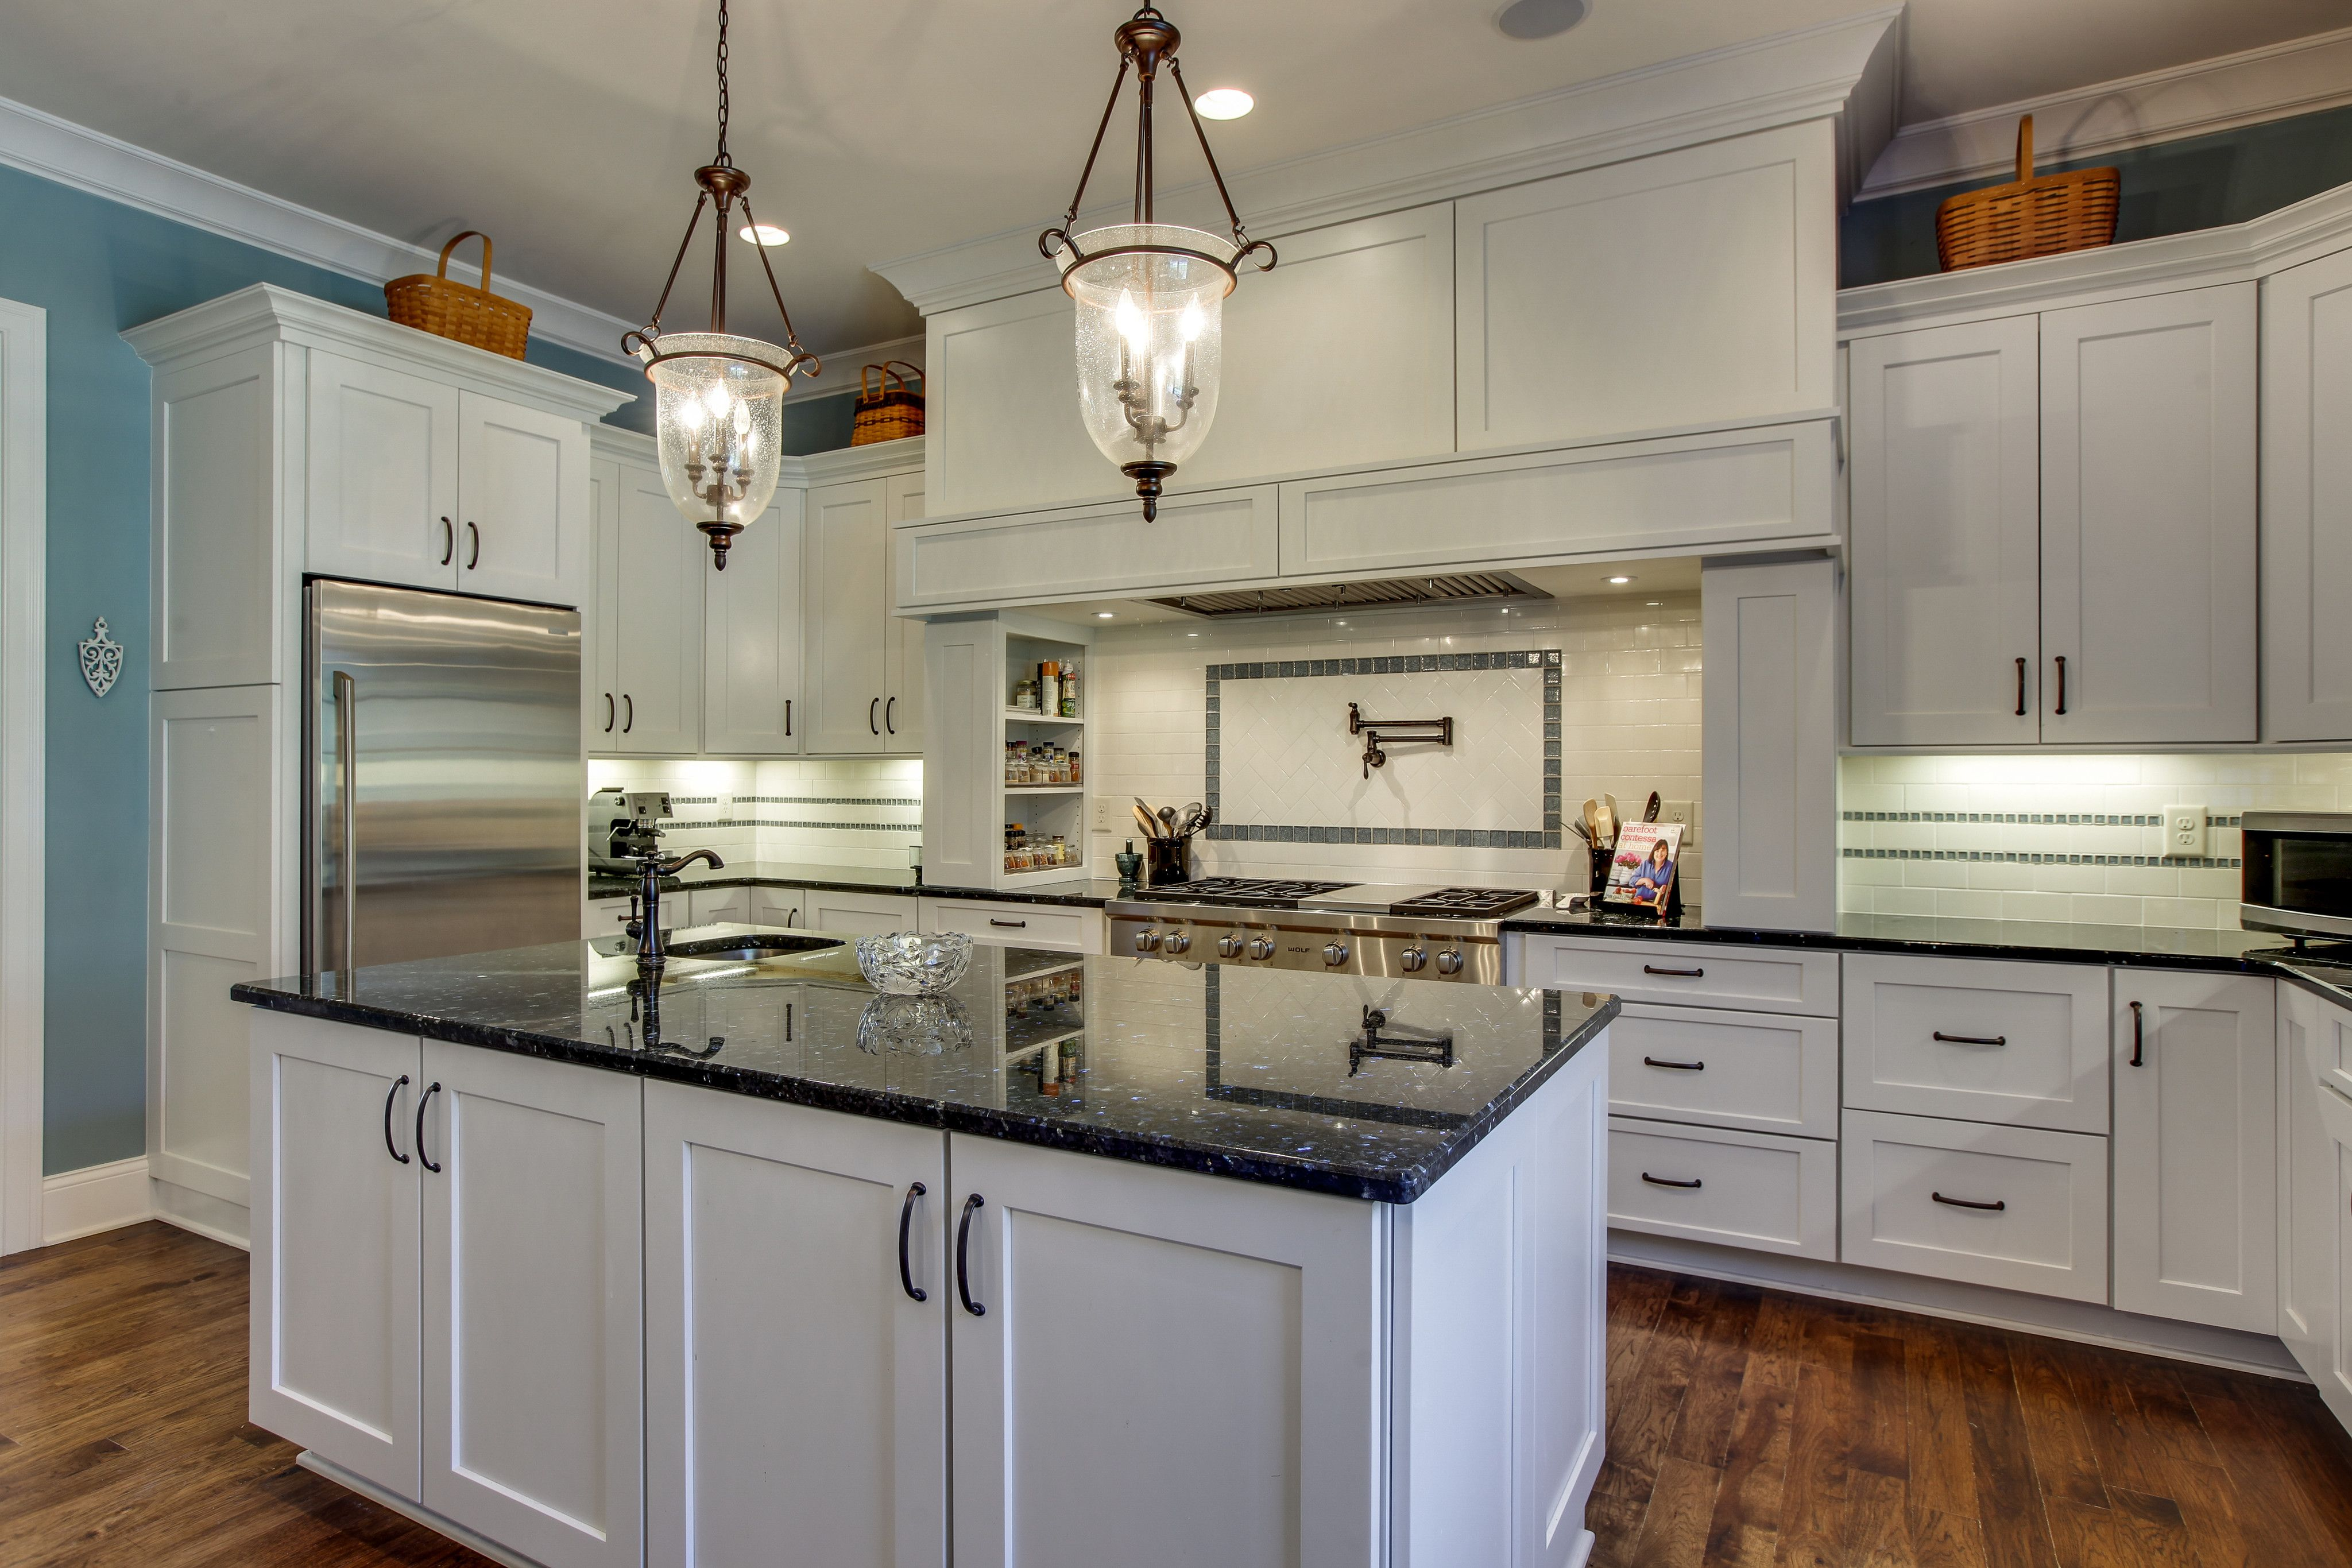 Image Result For Kitchen Cabinet Trends 2017 Farmhouse Style